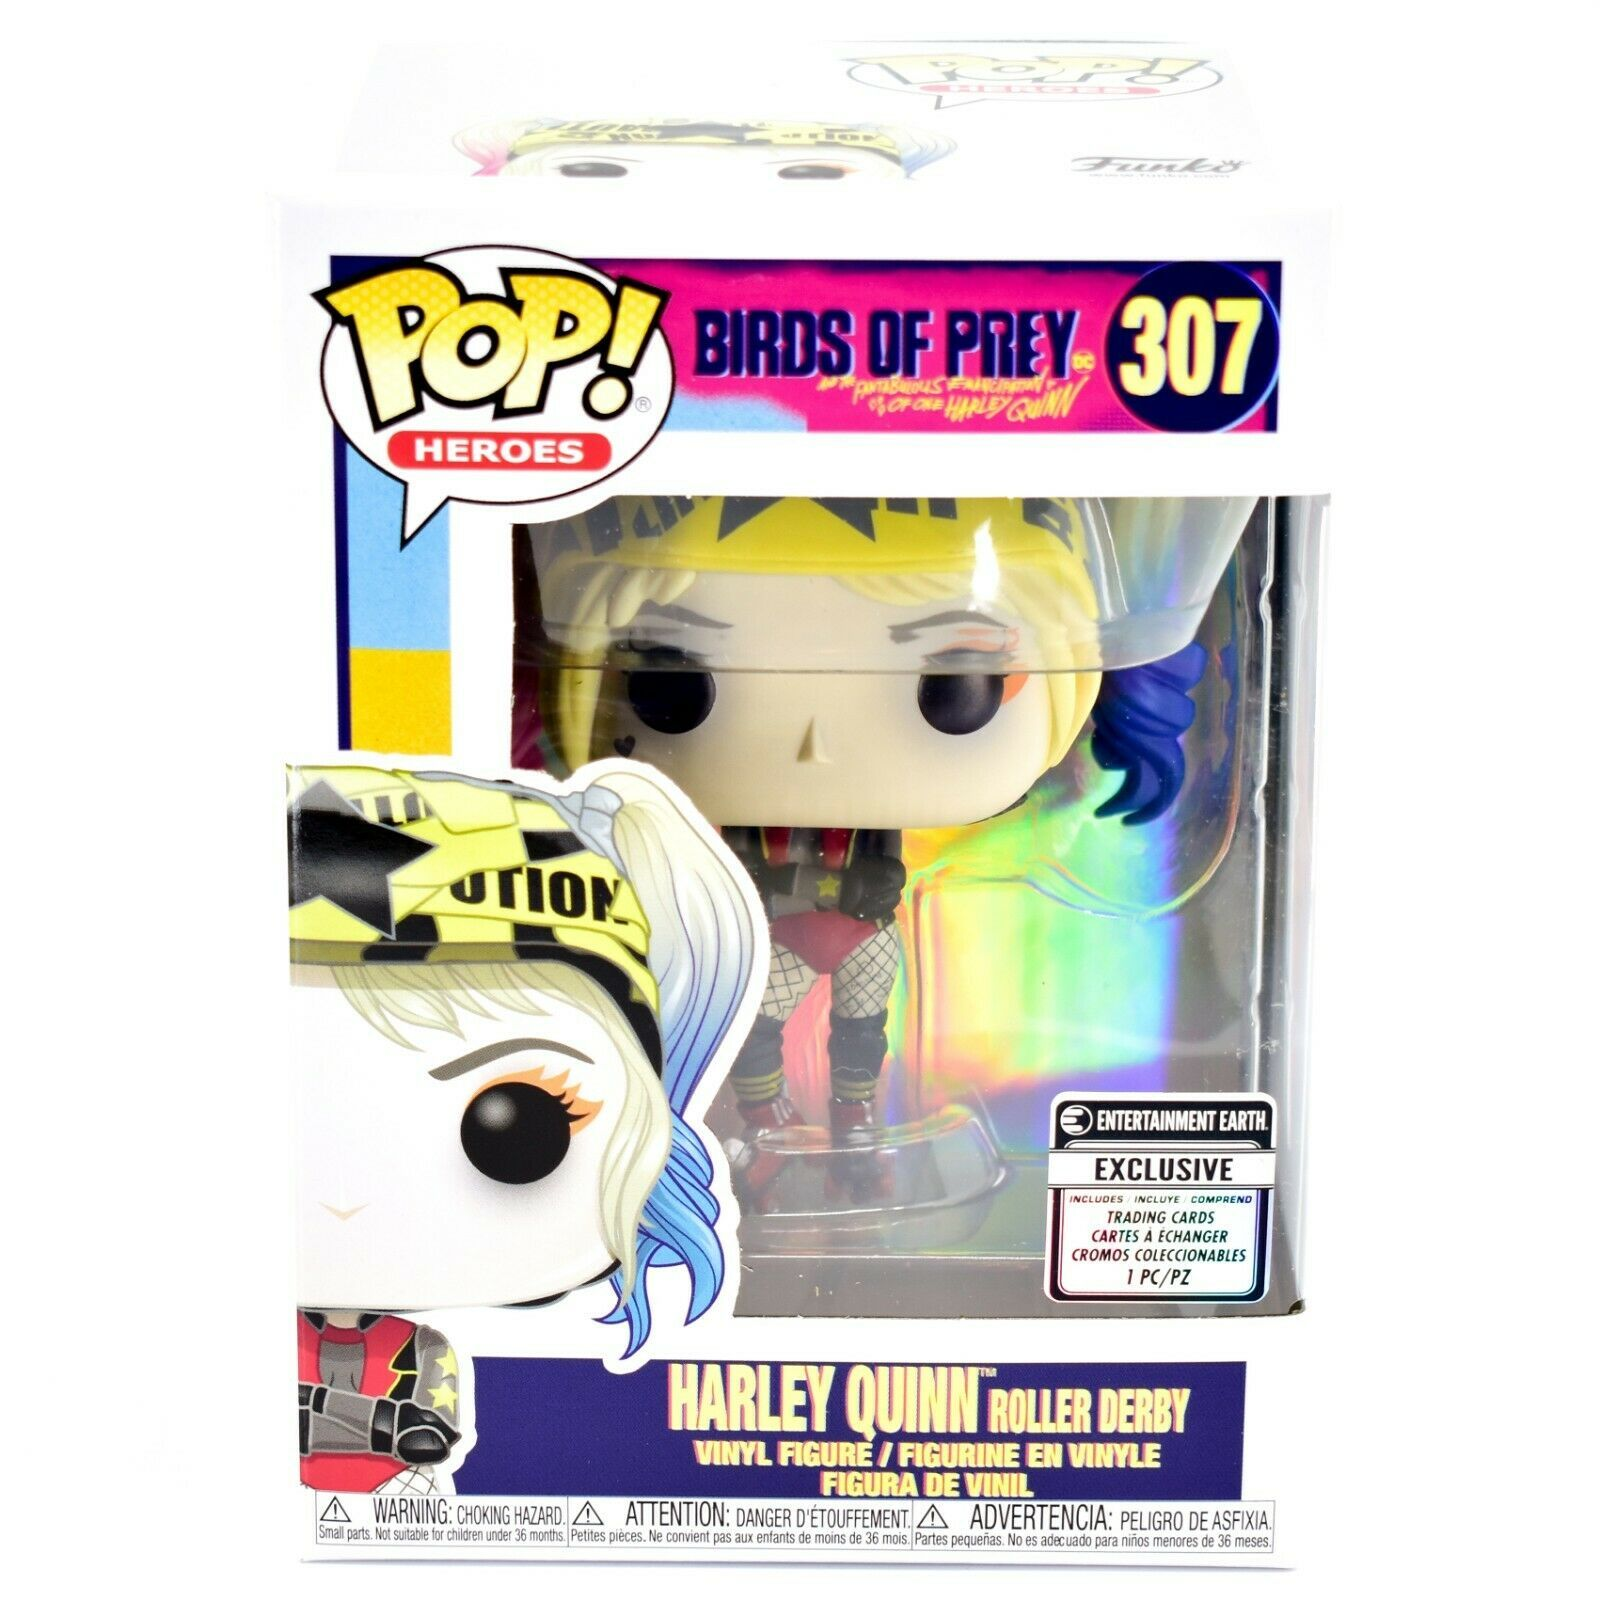 Funko Pop Heroes Birds of Prey Roller Derby Harley Quinn Entertainment Earth 307